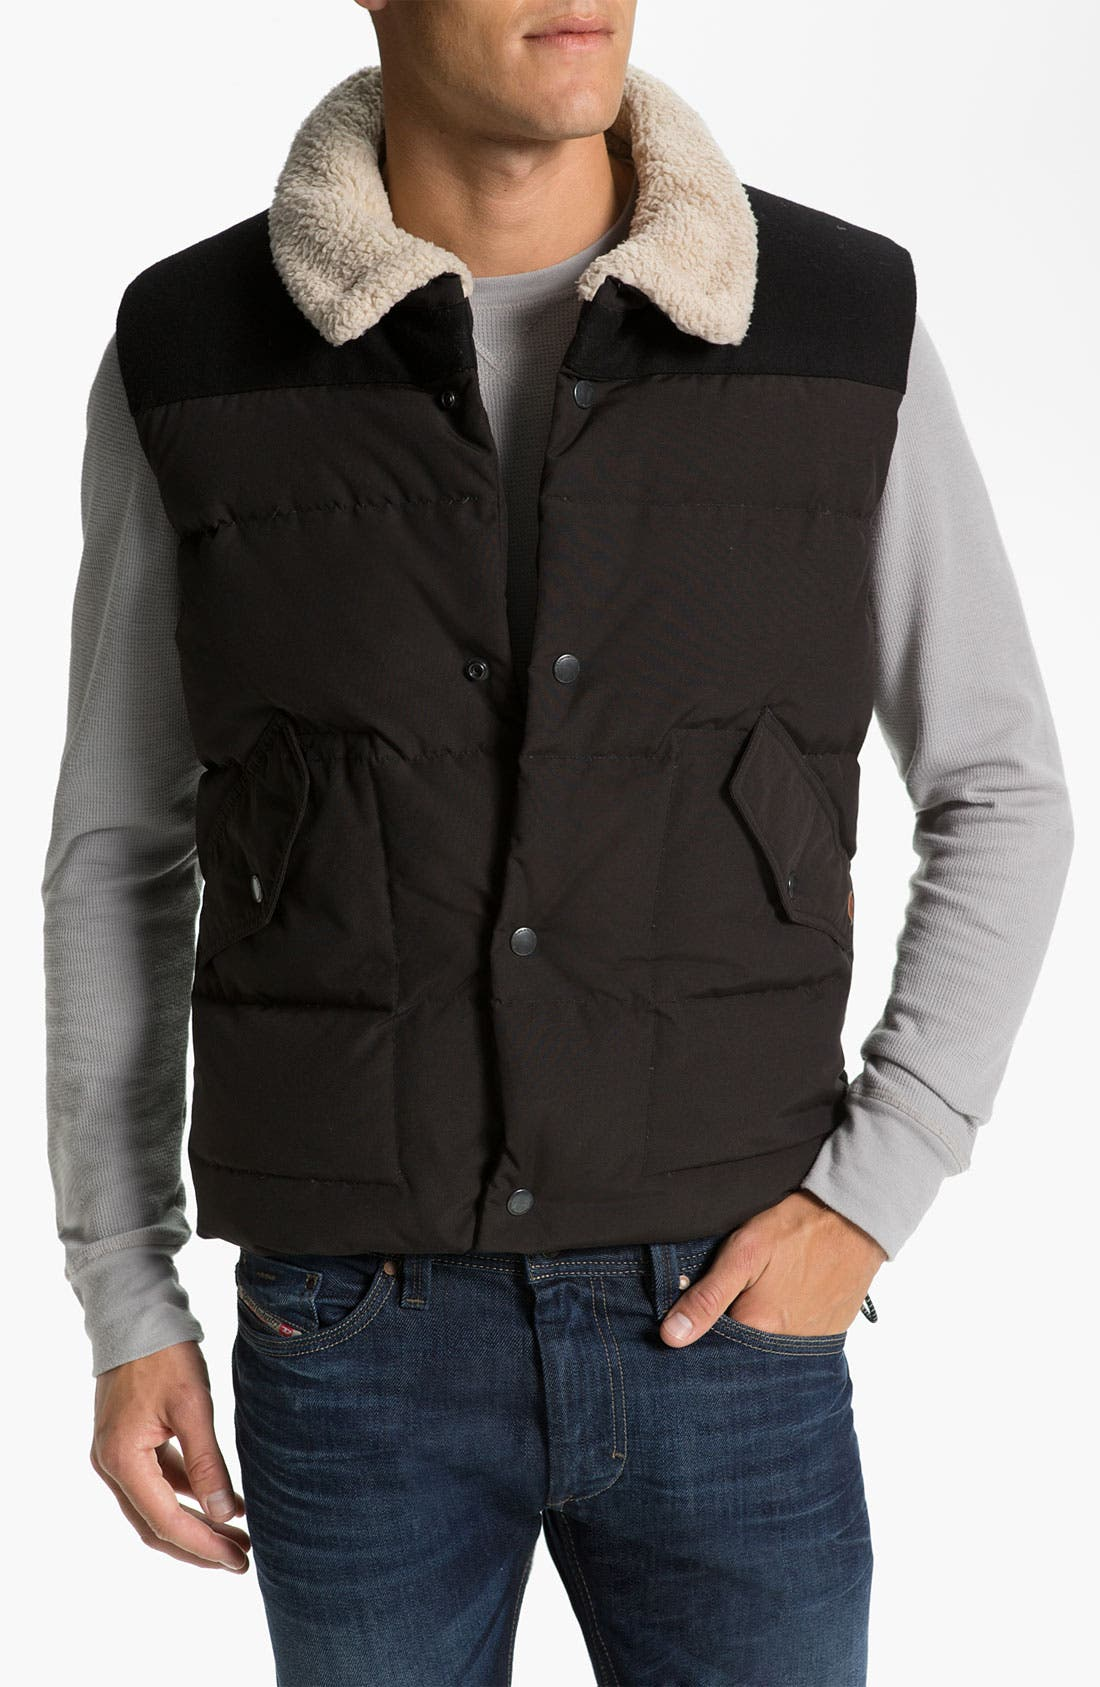 Main Image - J.C. Rags Quilted Puffer Vest with Faux Shearling Trim